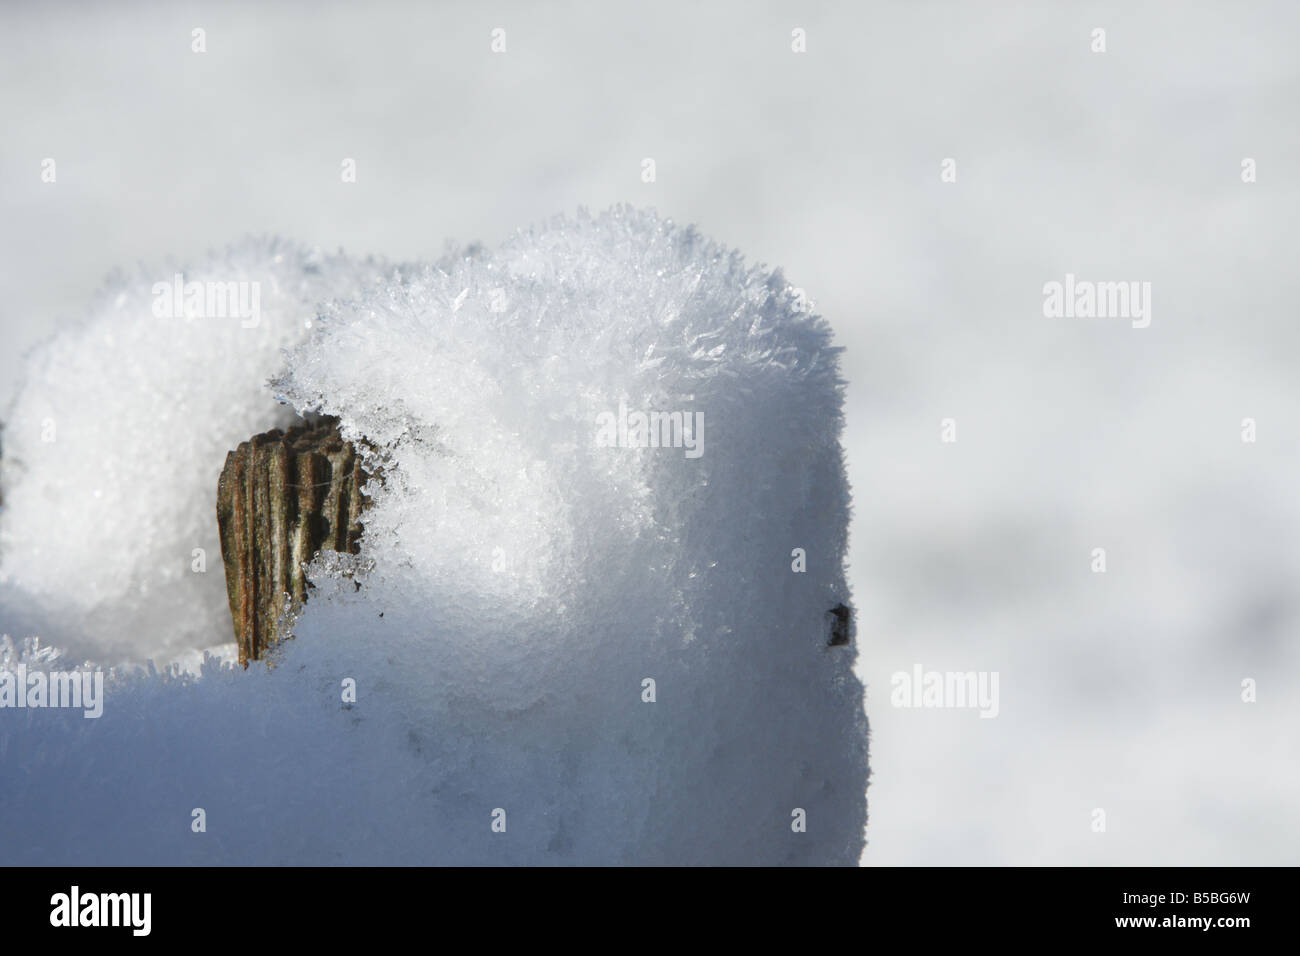 Fence post covered in snow - Stock Image